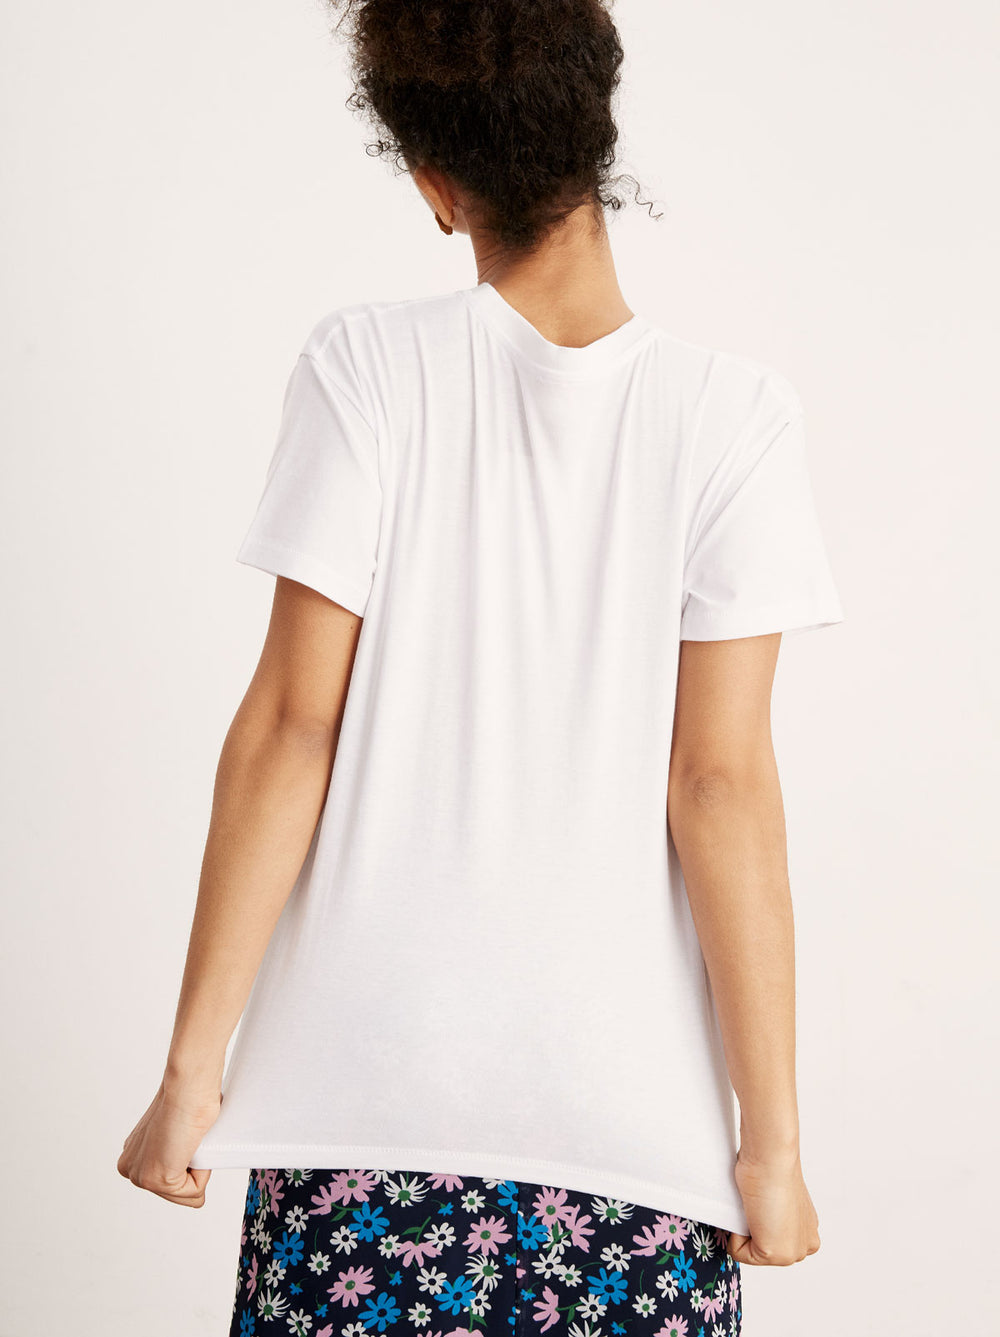 Oh Snap White Embroidered Cotton T-shirt by KITRI Studio